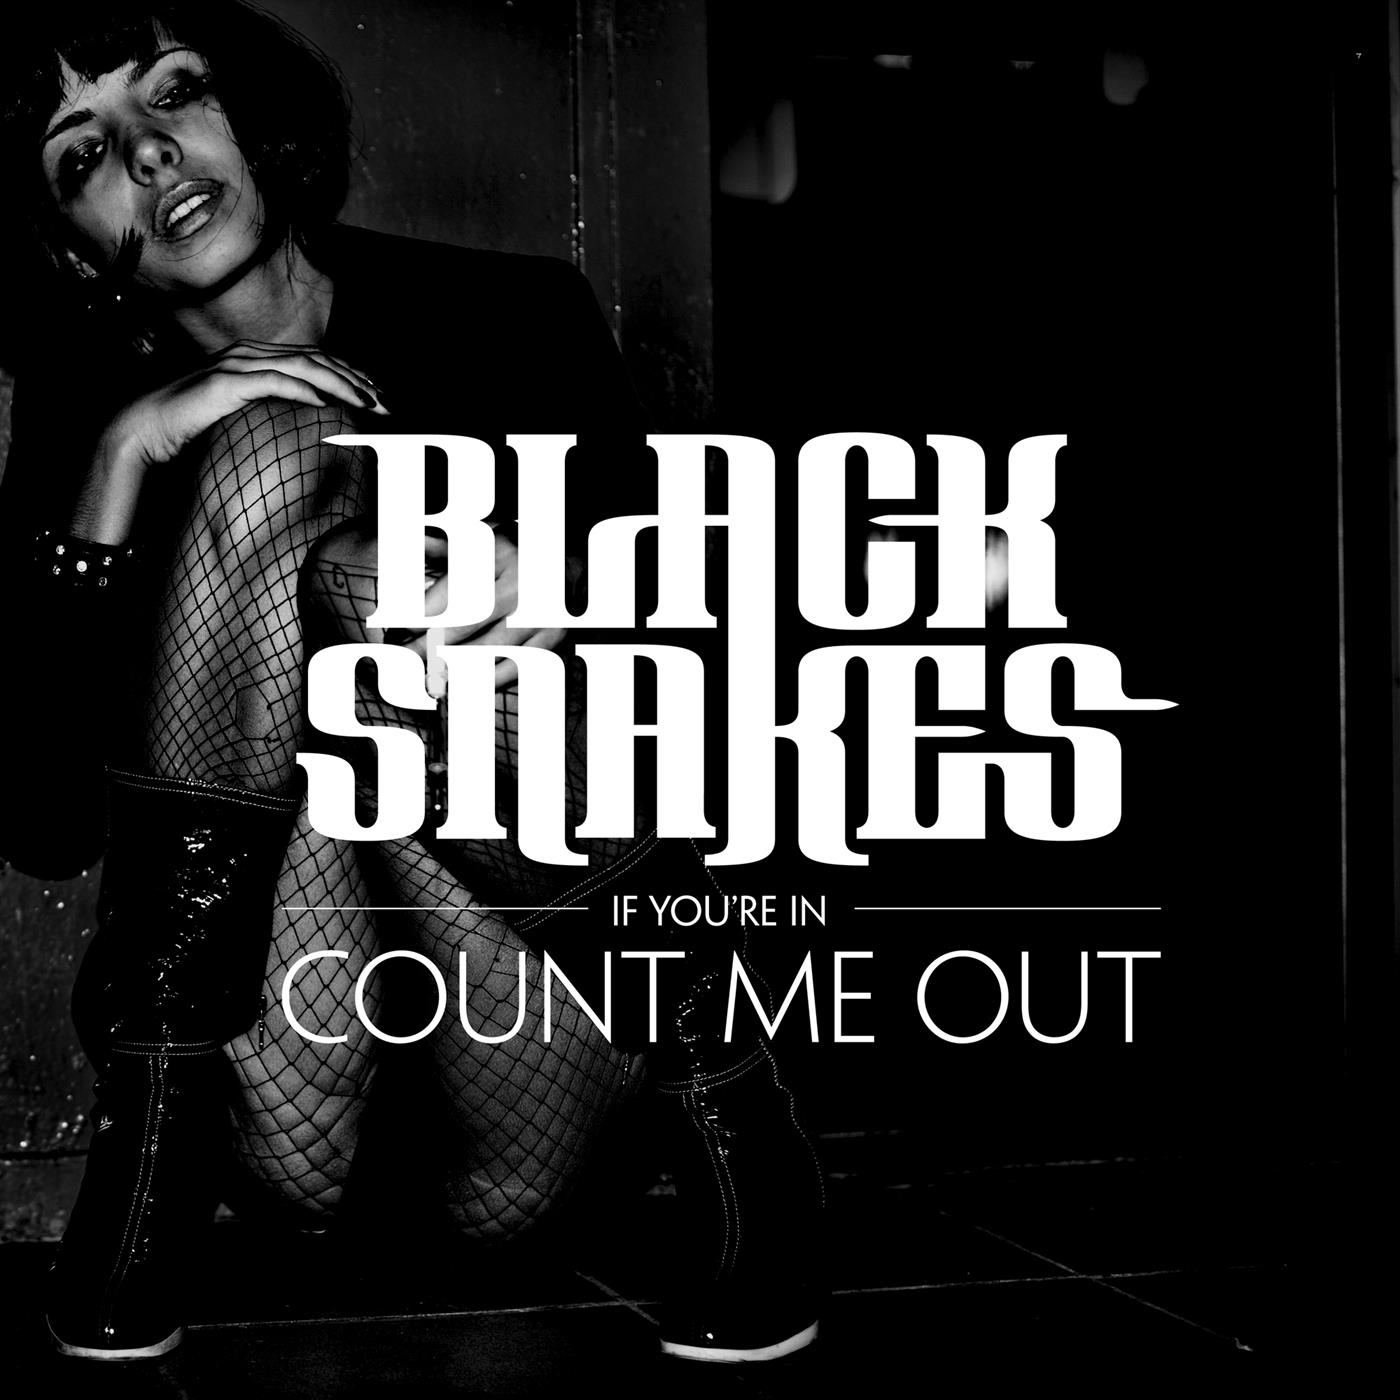 (If You're In) Count Me Out